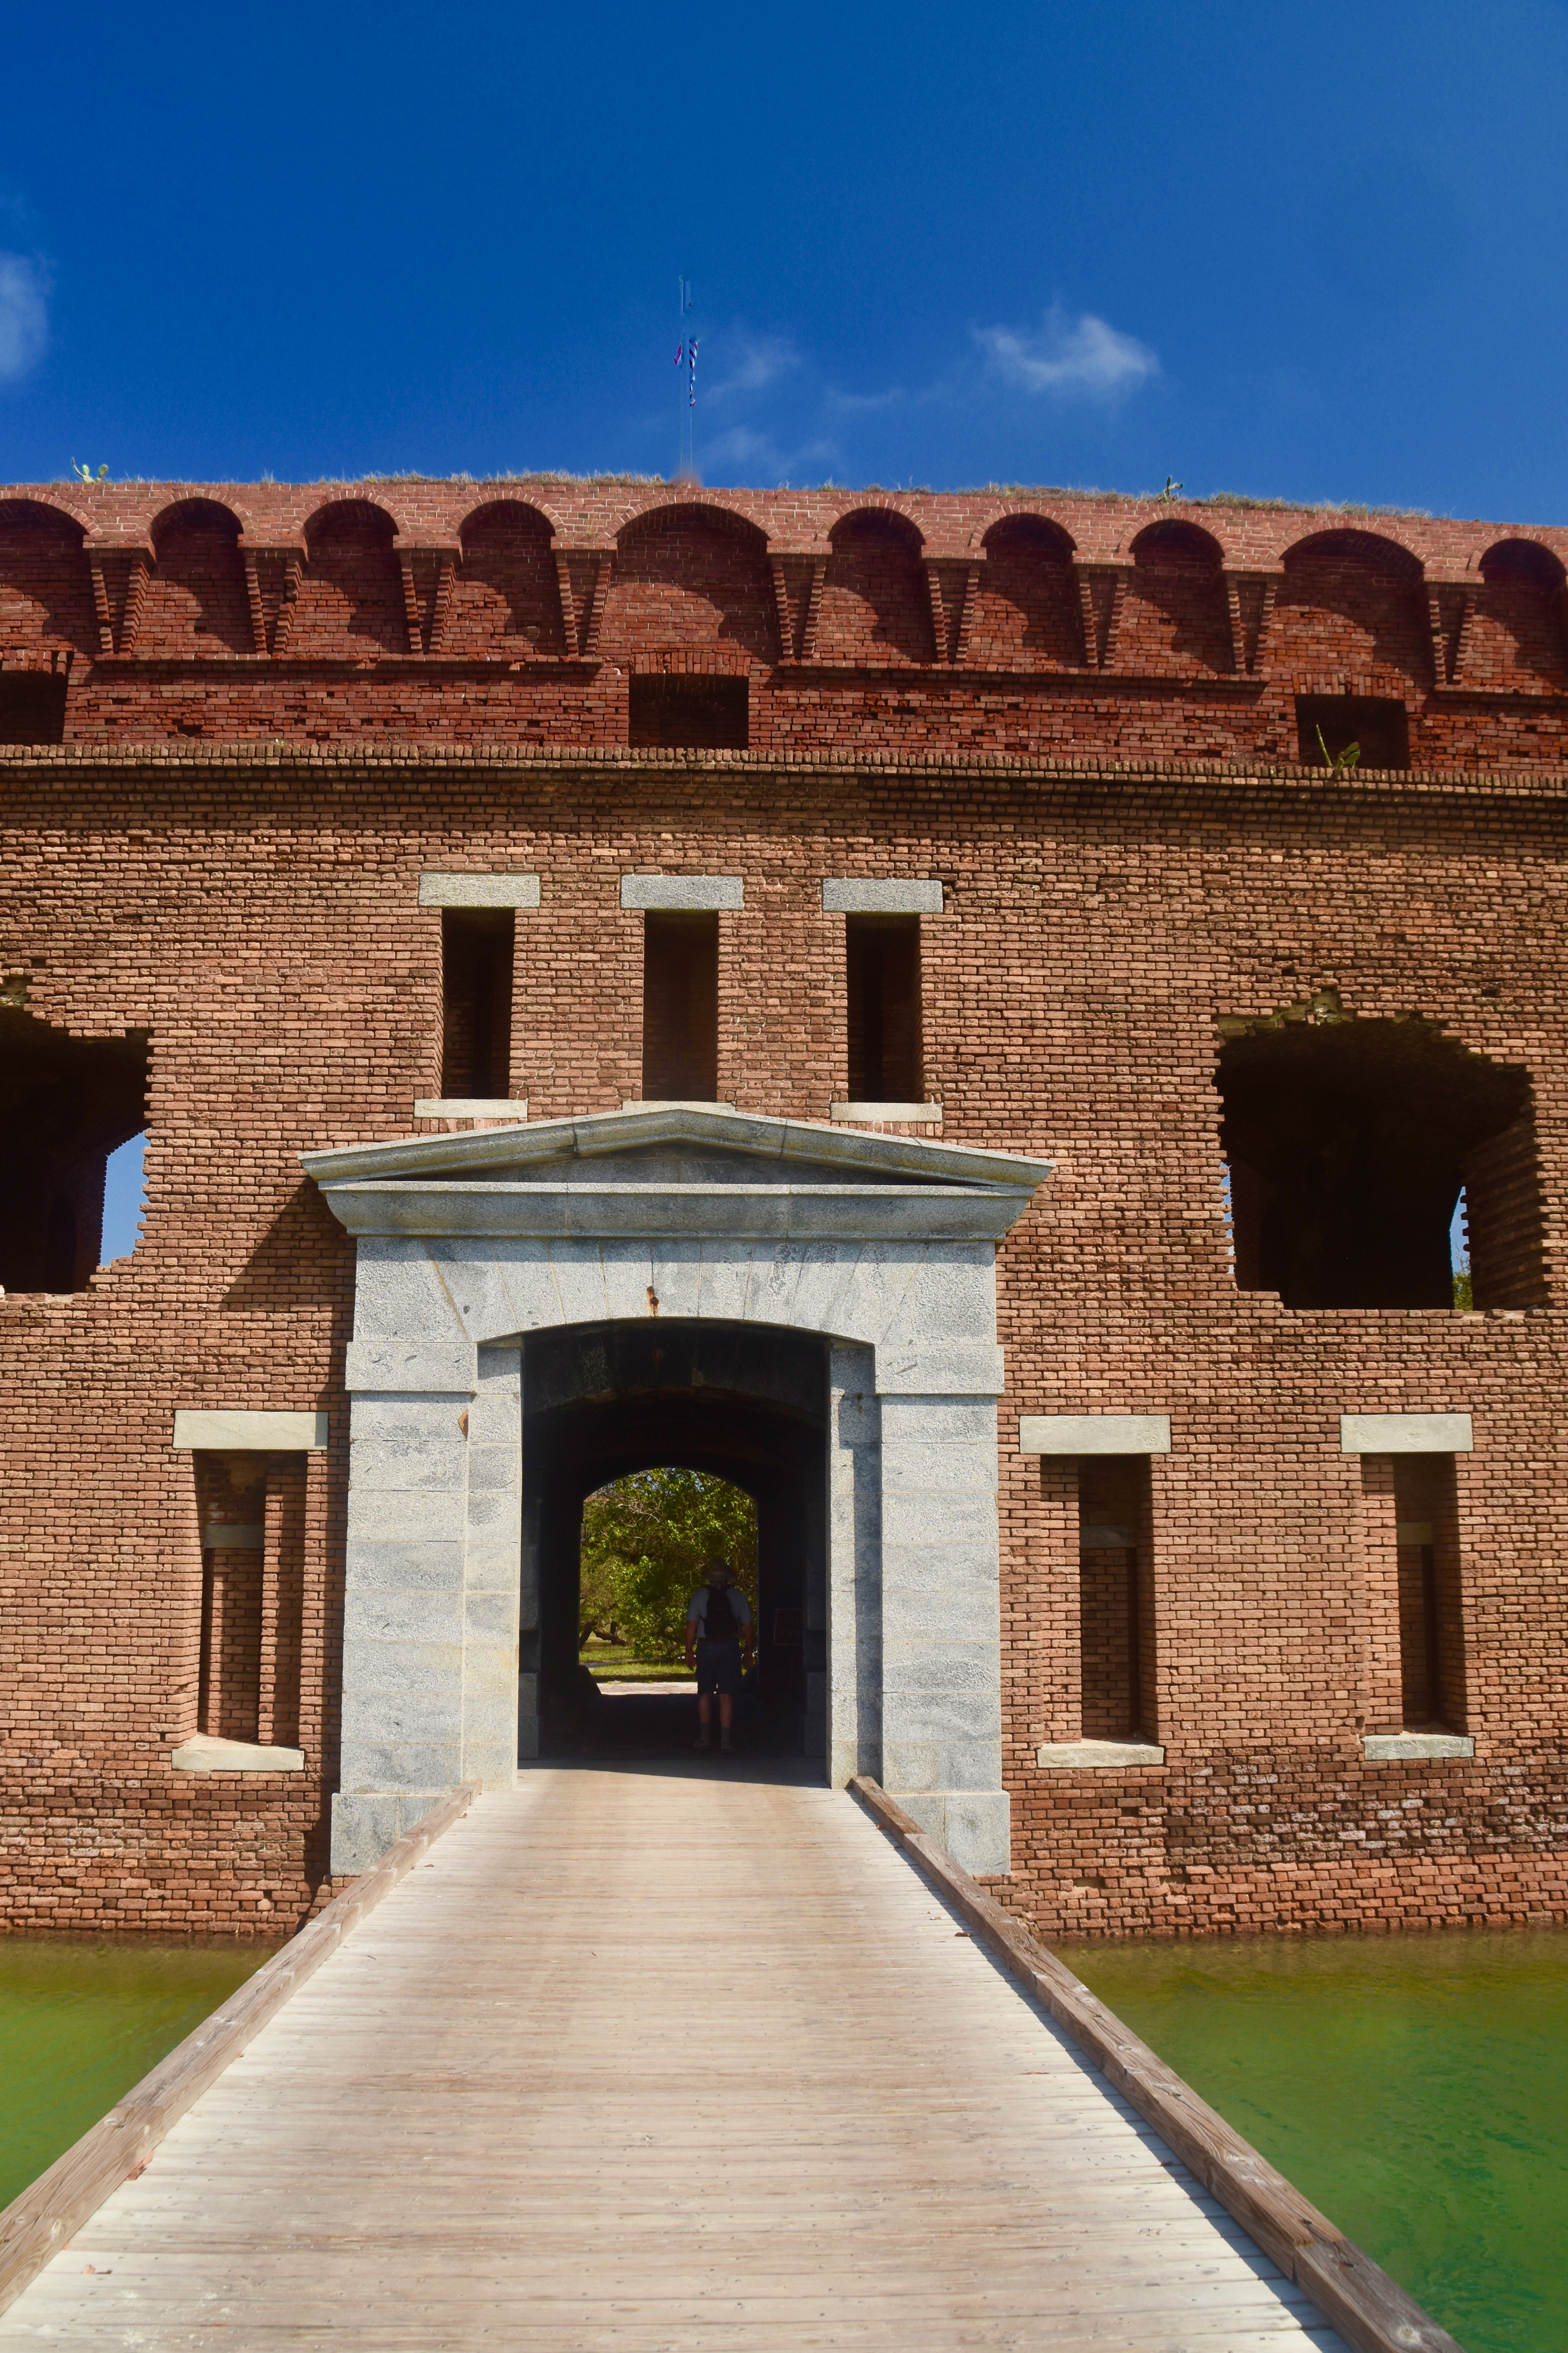 Entrance to Fort Jefferson, Dry Tortugas